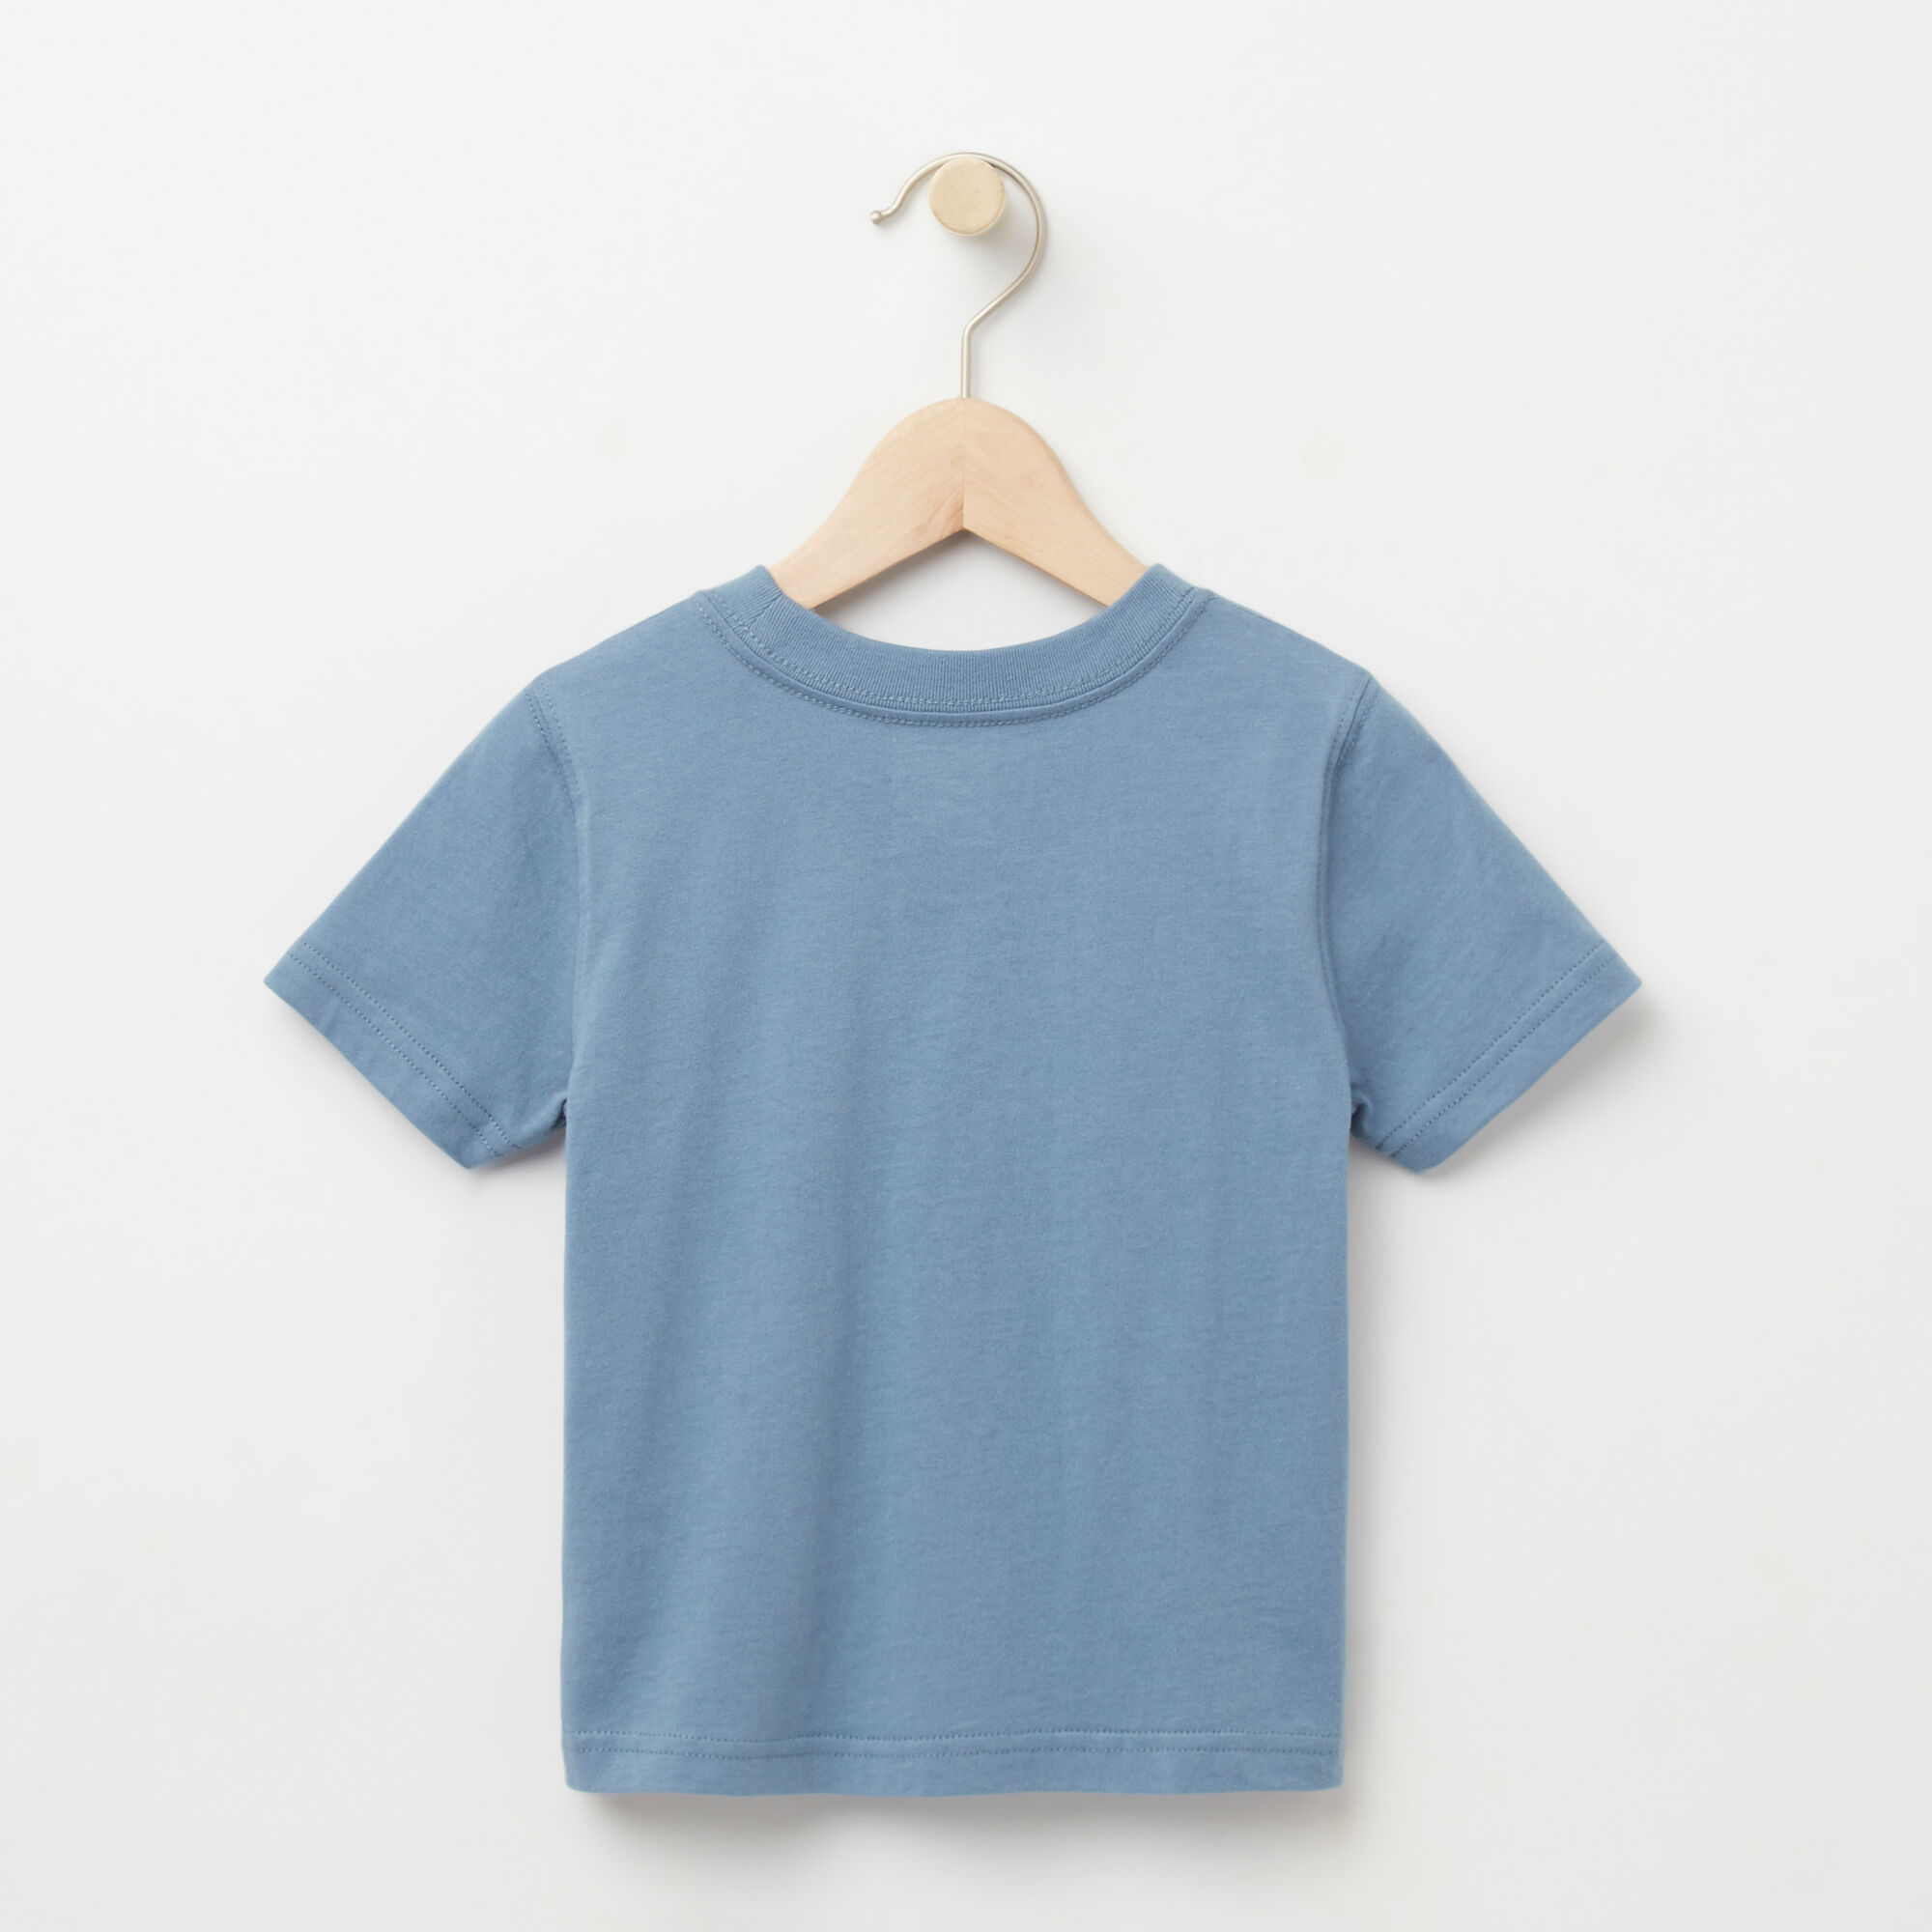 Toddler Canoe Adventure T-shirt